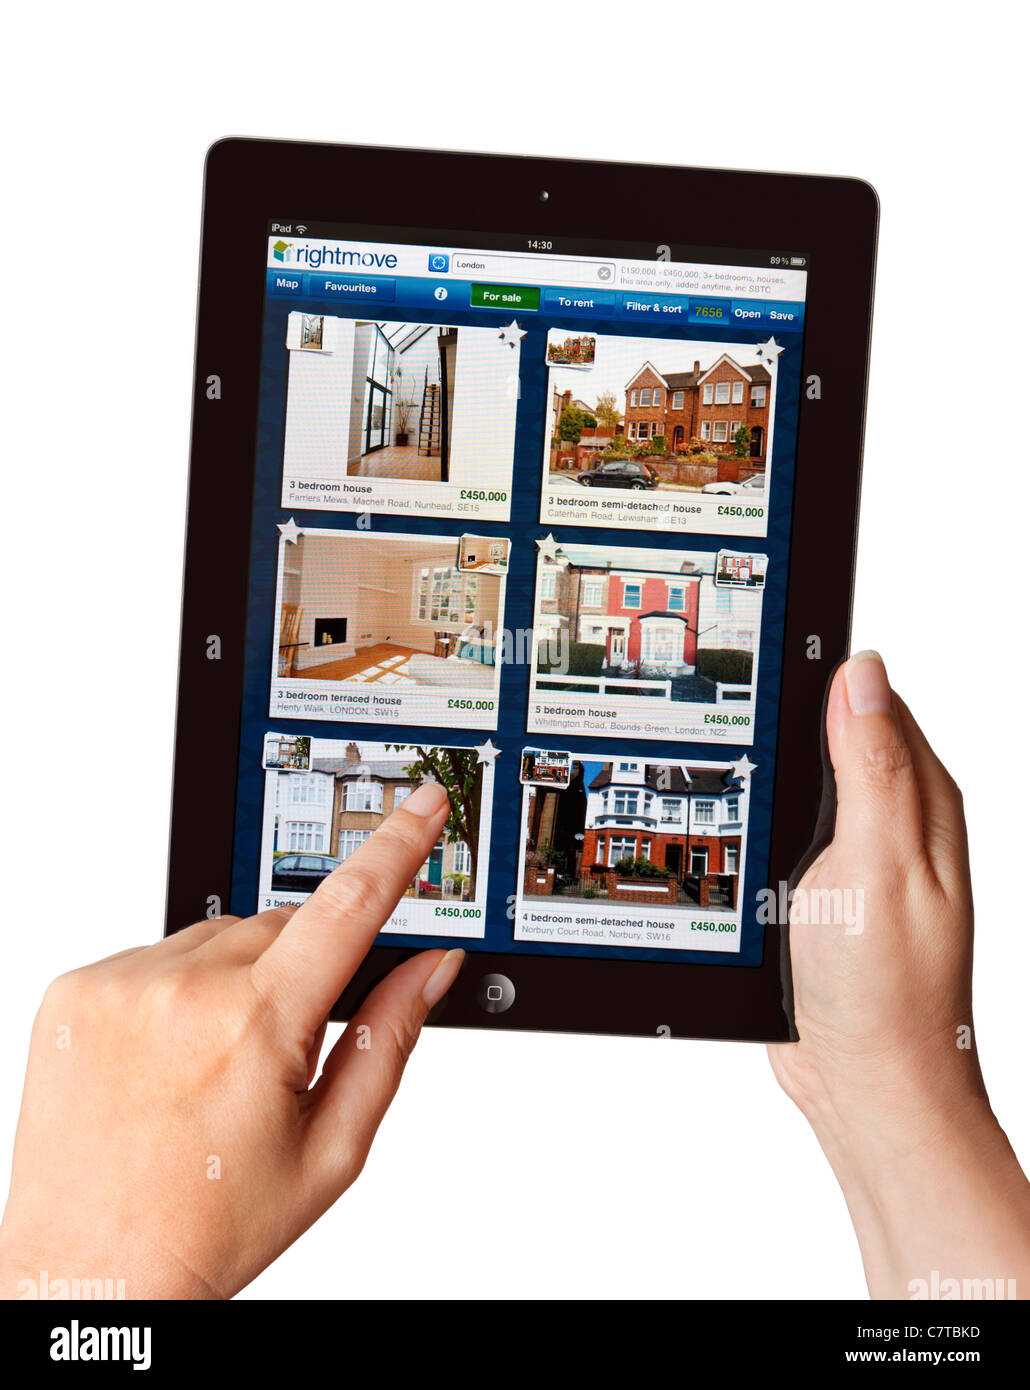 Hands holding iPad searching for a house for sale on the Rightmove app on a tablet Stock Photo